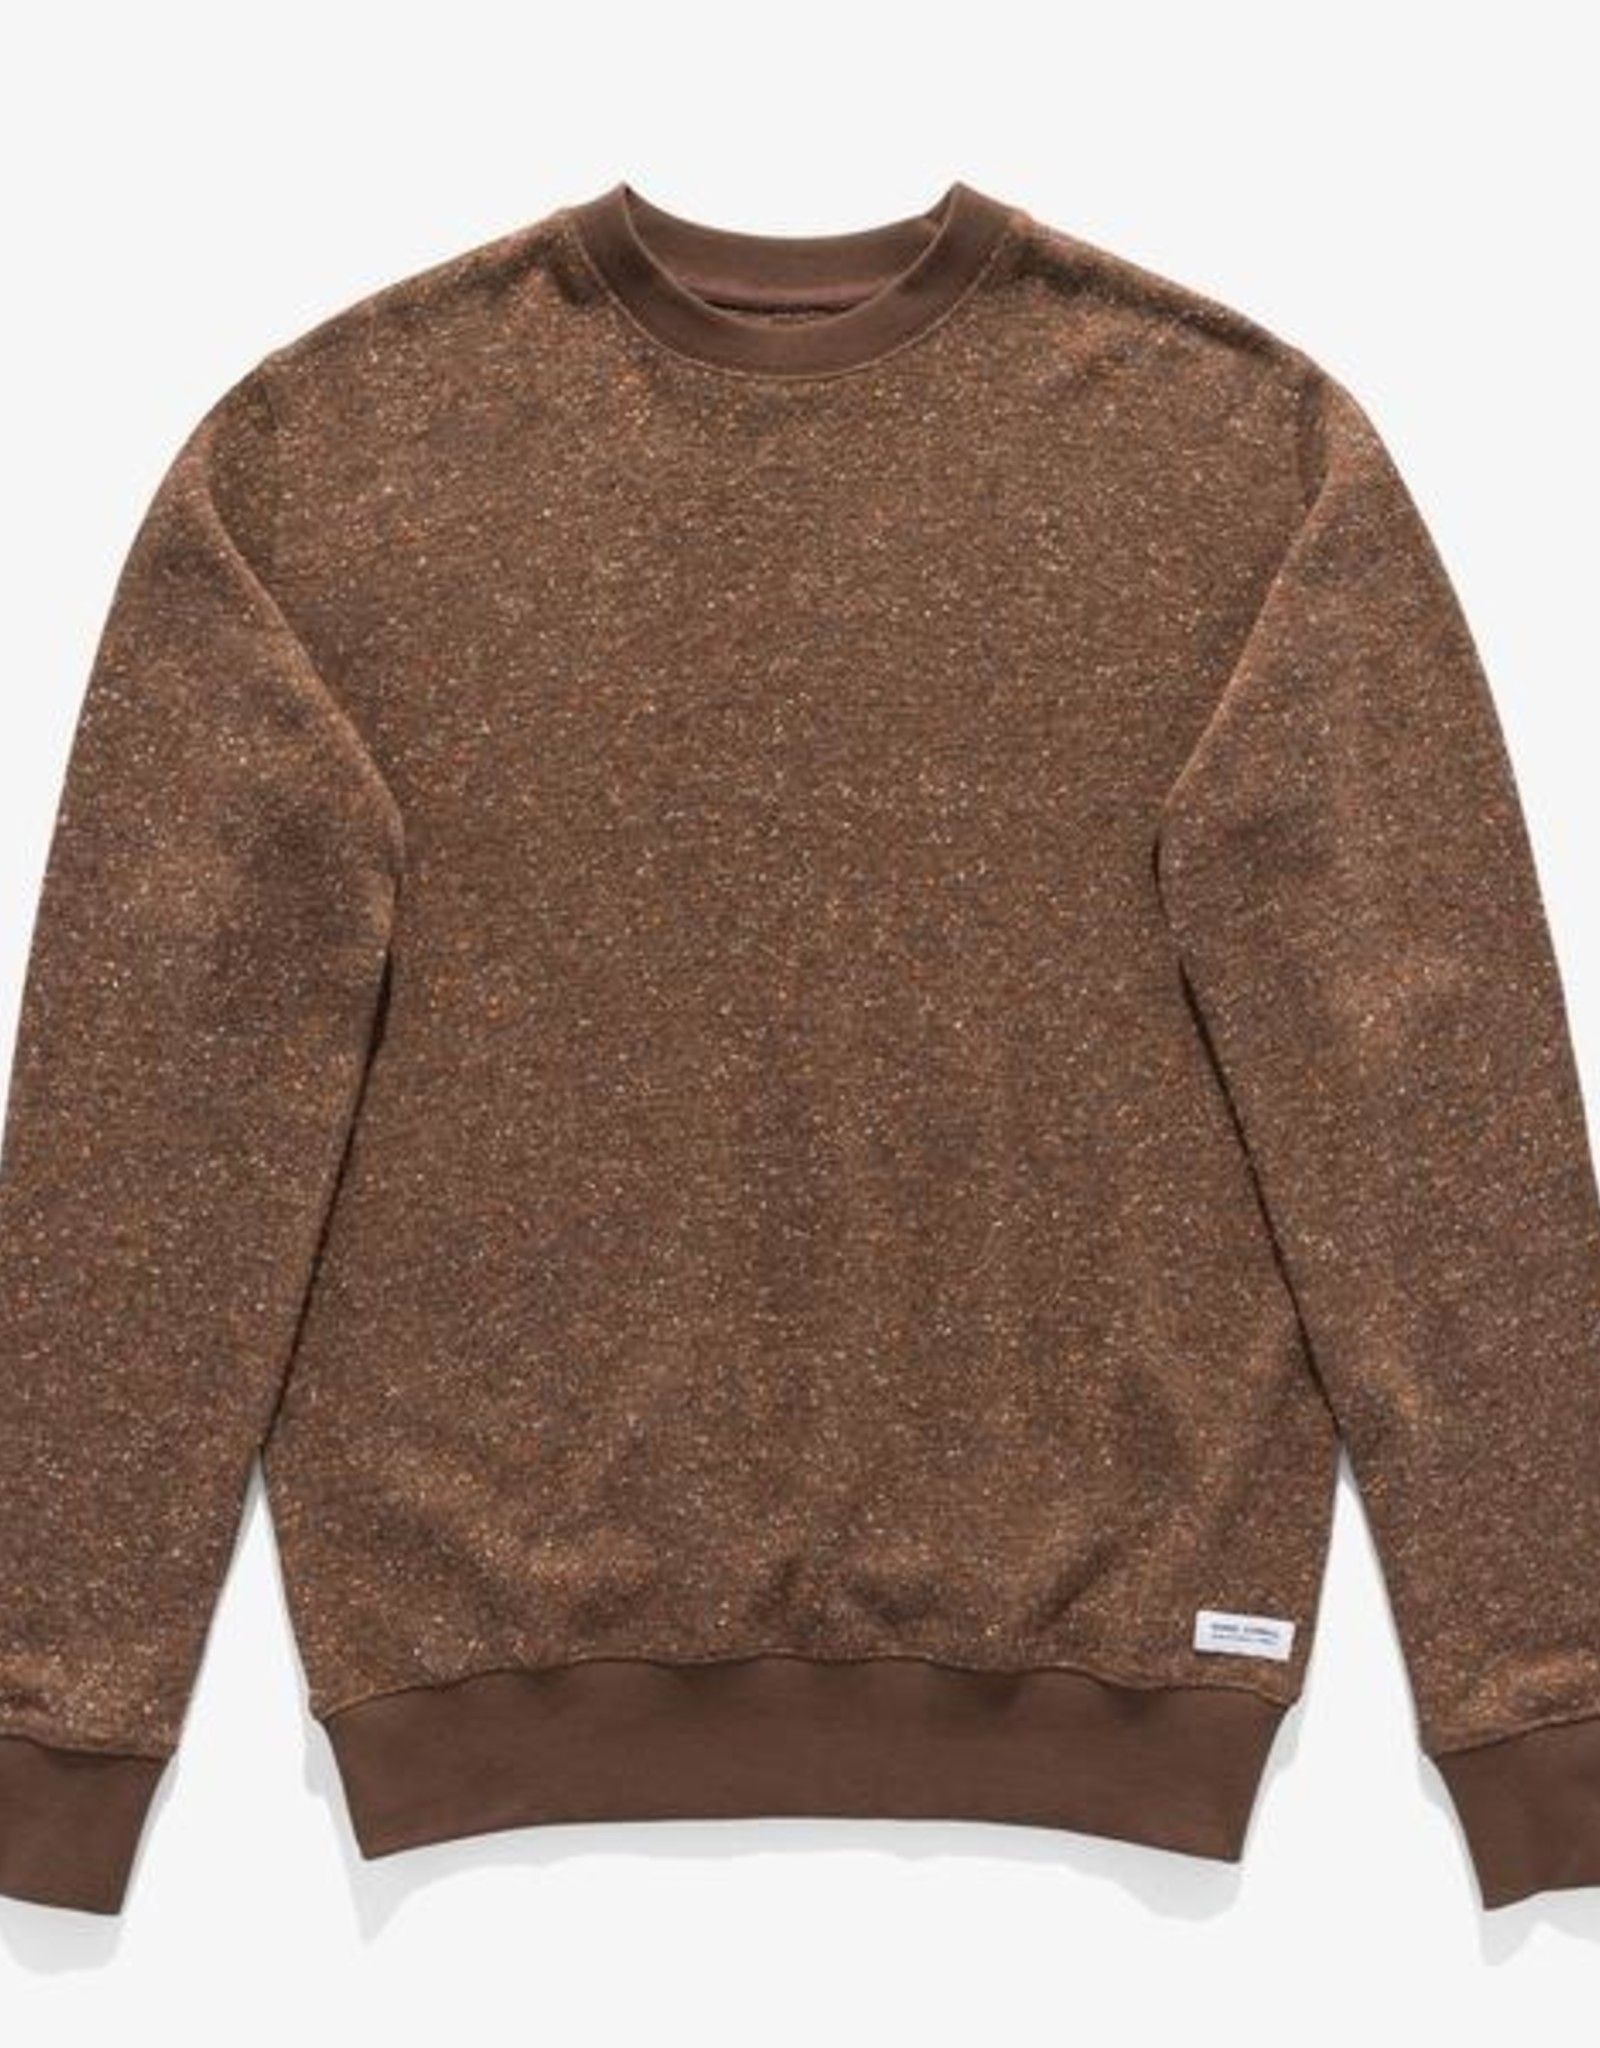 BANKS JOURNAL BANKS JOURNAL MIDNIGHT KNIT - PINECONE